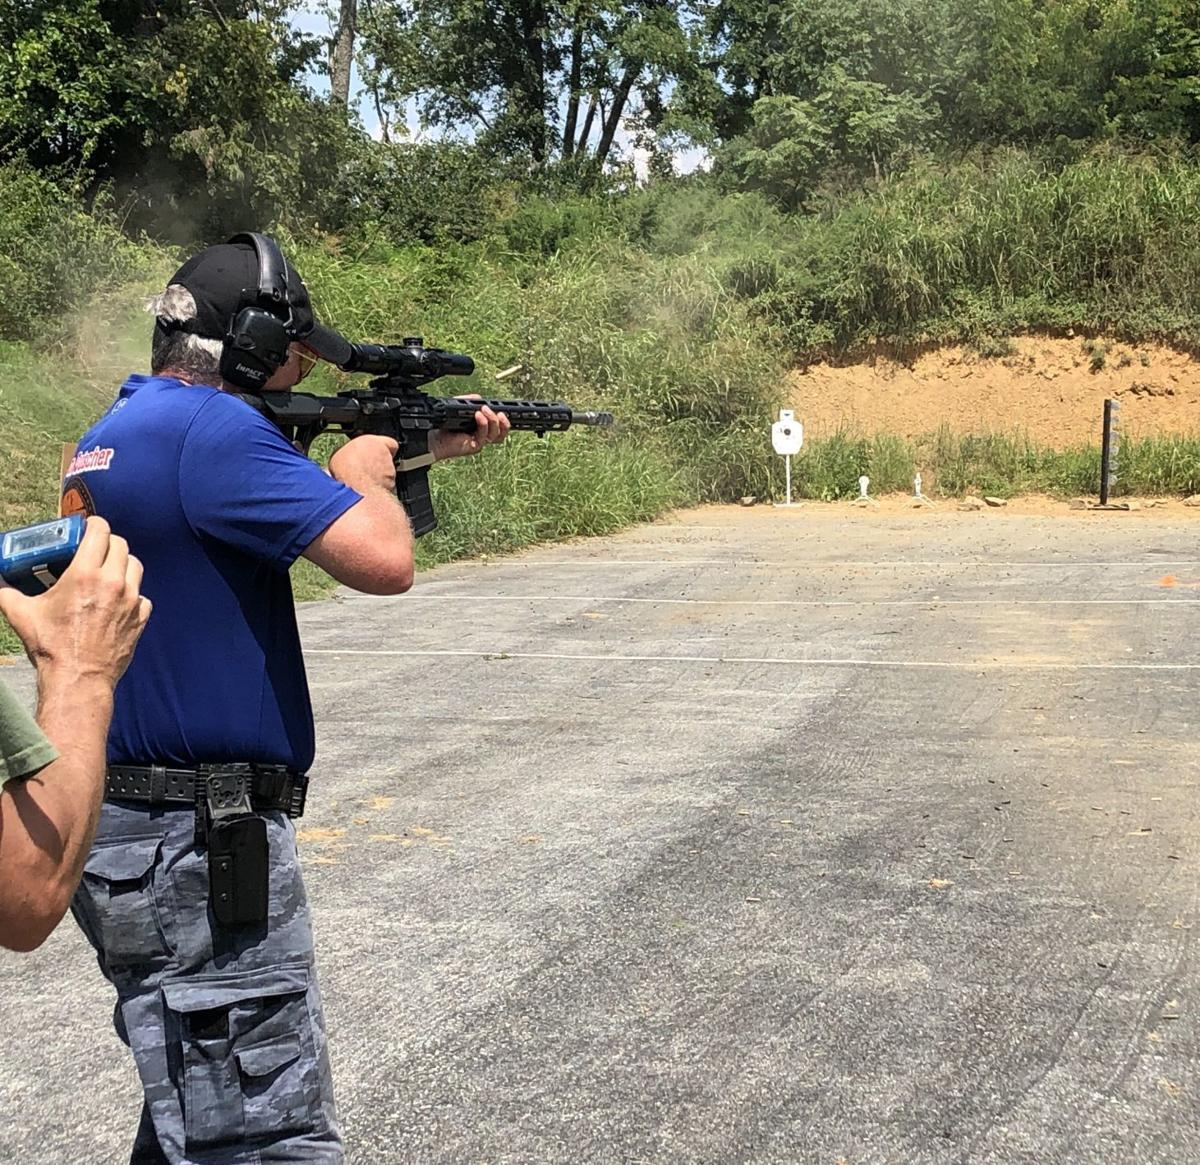 Regional law enforcement officers travel to Jefferson County for shooting competition